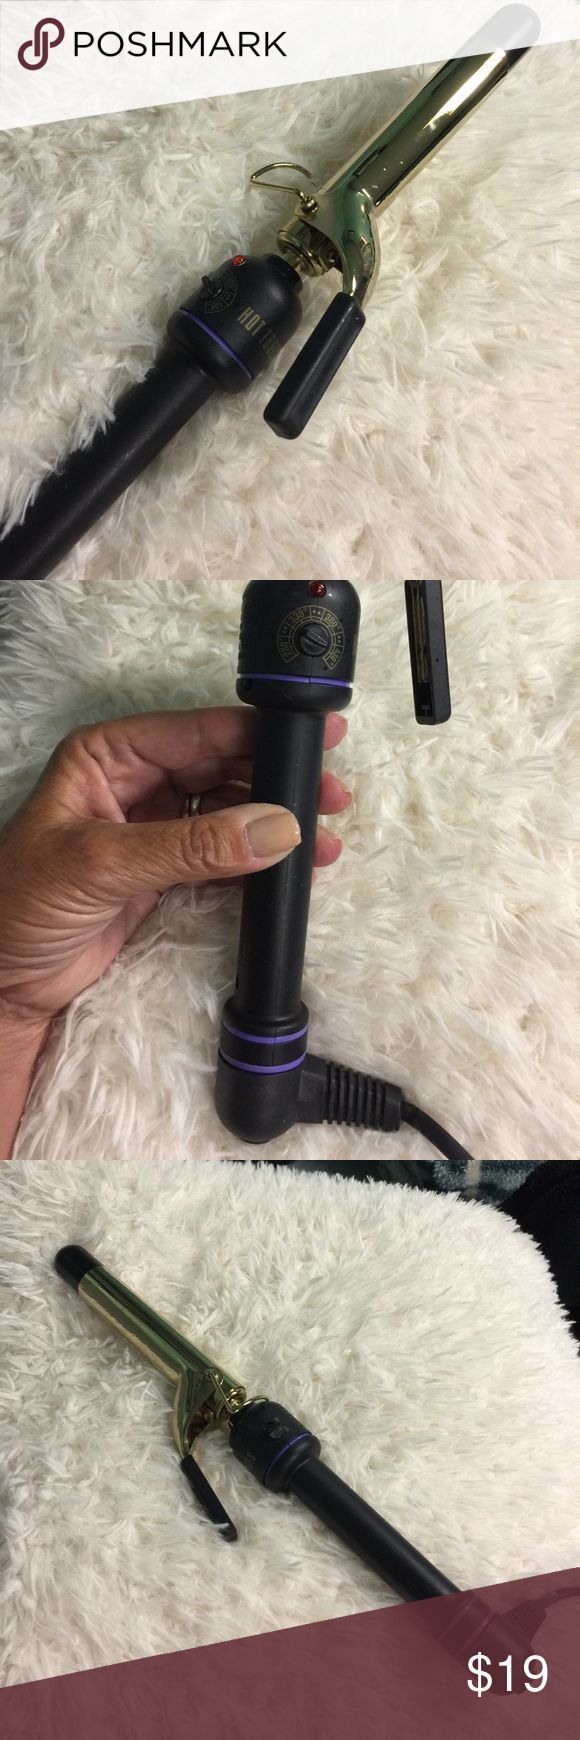 HOT TOOLS 1 INCH CURLING IRON Hot tools curling iron.  Bouncy curls and waves with the 1 inch wide rod. Temperature settings from 280-430. On off switch. Spiral swivel handle. Resting stand. Hot Tools Accessories Hair Accessories